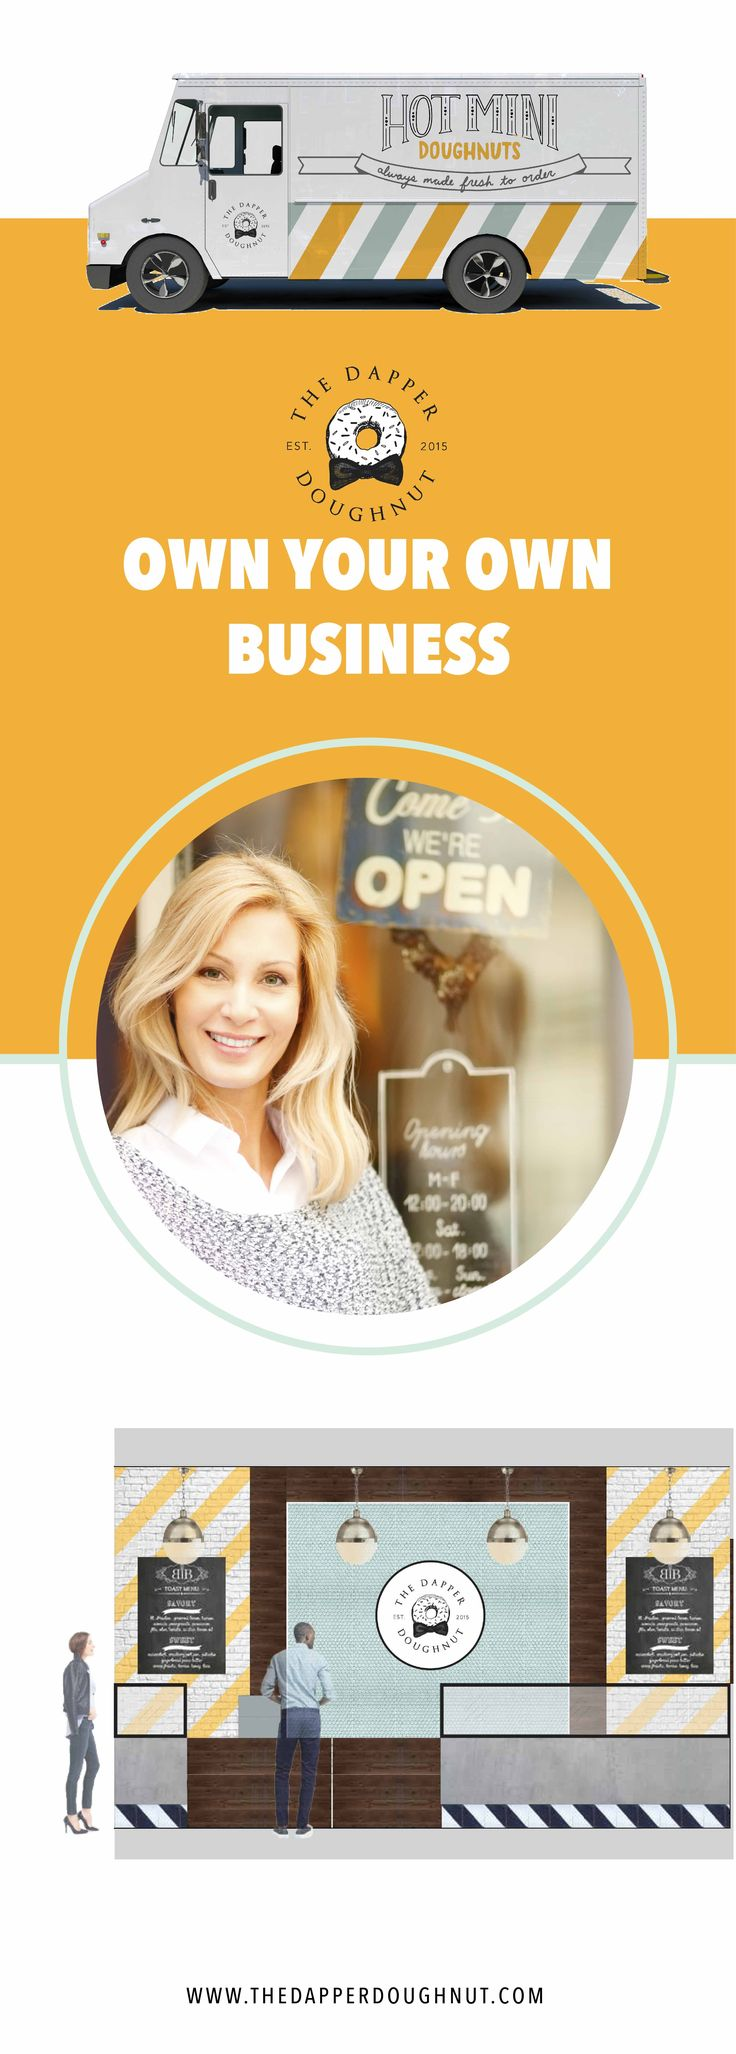 Do you want to own your own business? The Dapper Doughnut is an exciting franchise business opportunity for women in the US. Request more info at: http://dapperdoughnutfranchise.com/franchising-the-dapper-doughnut/ to learn more about this franchise.  You can do a storefront or a food truck and the brand is on point!